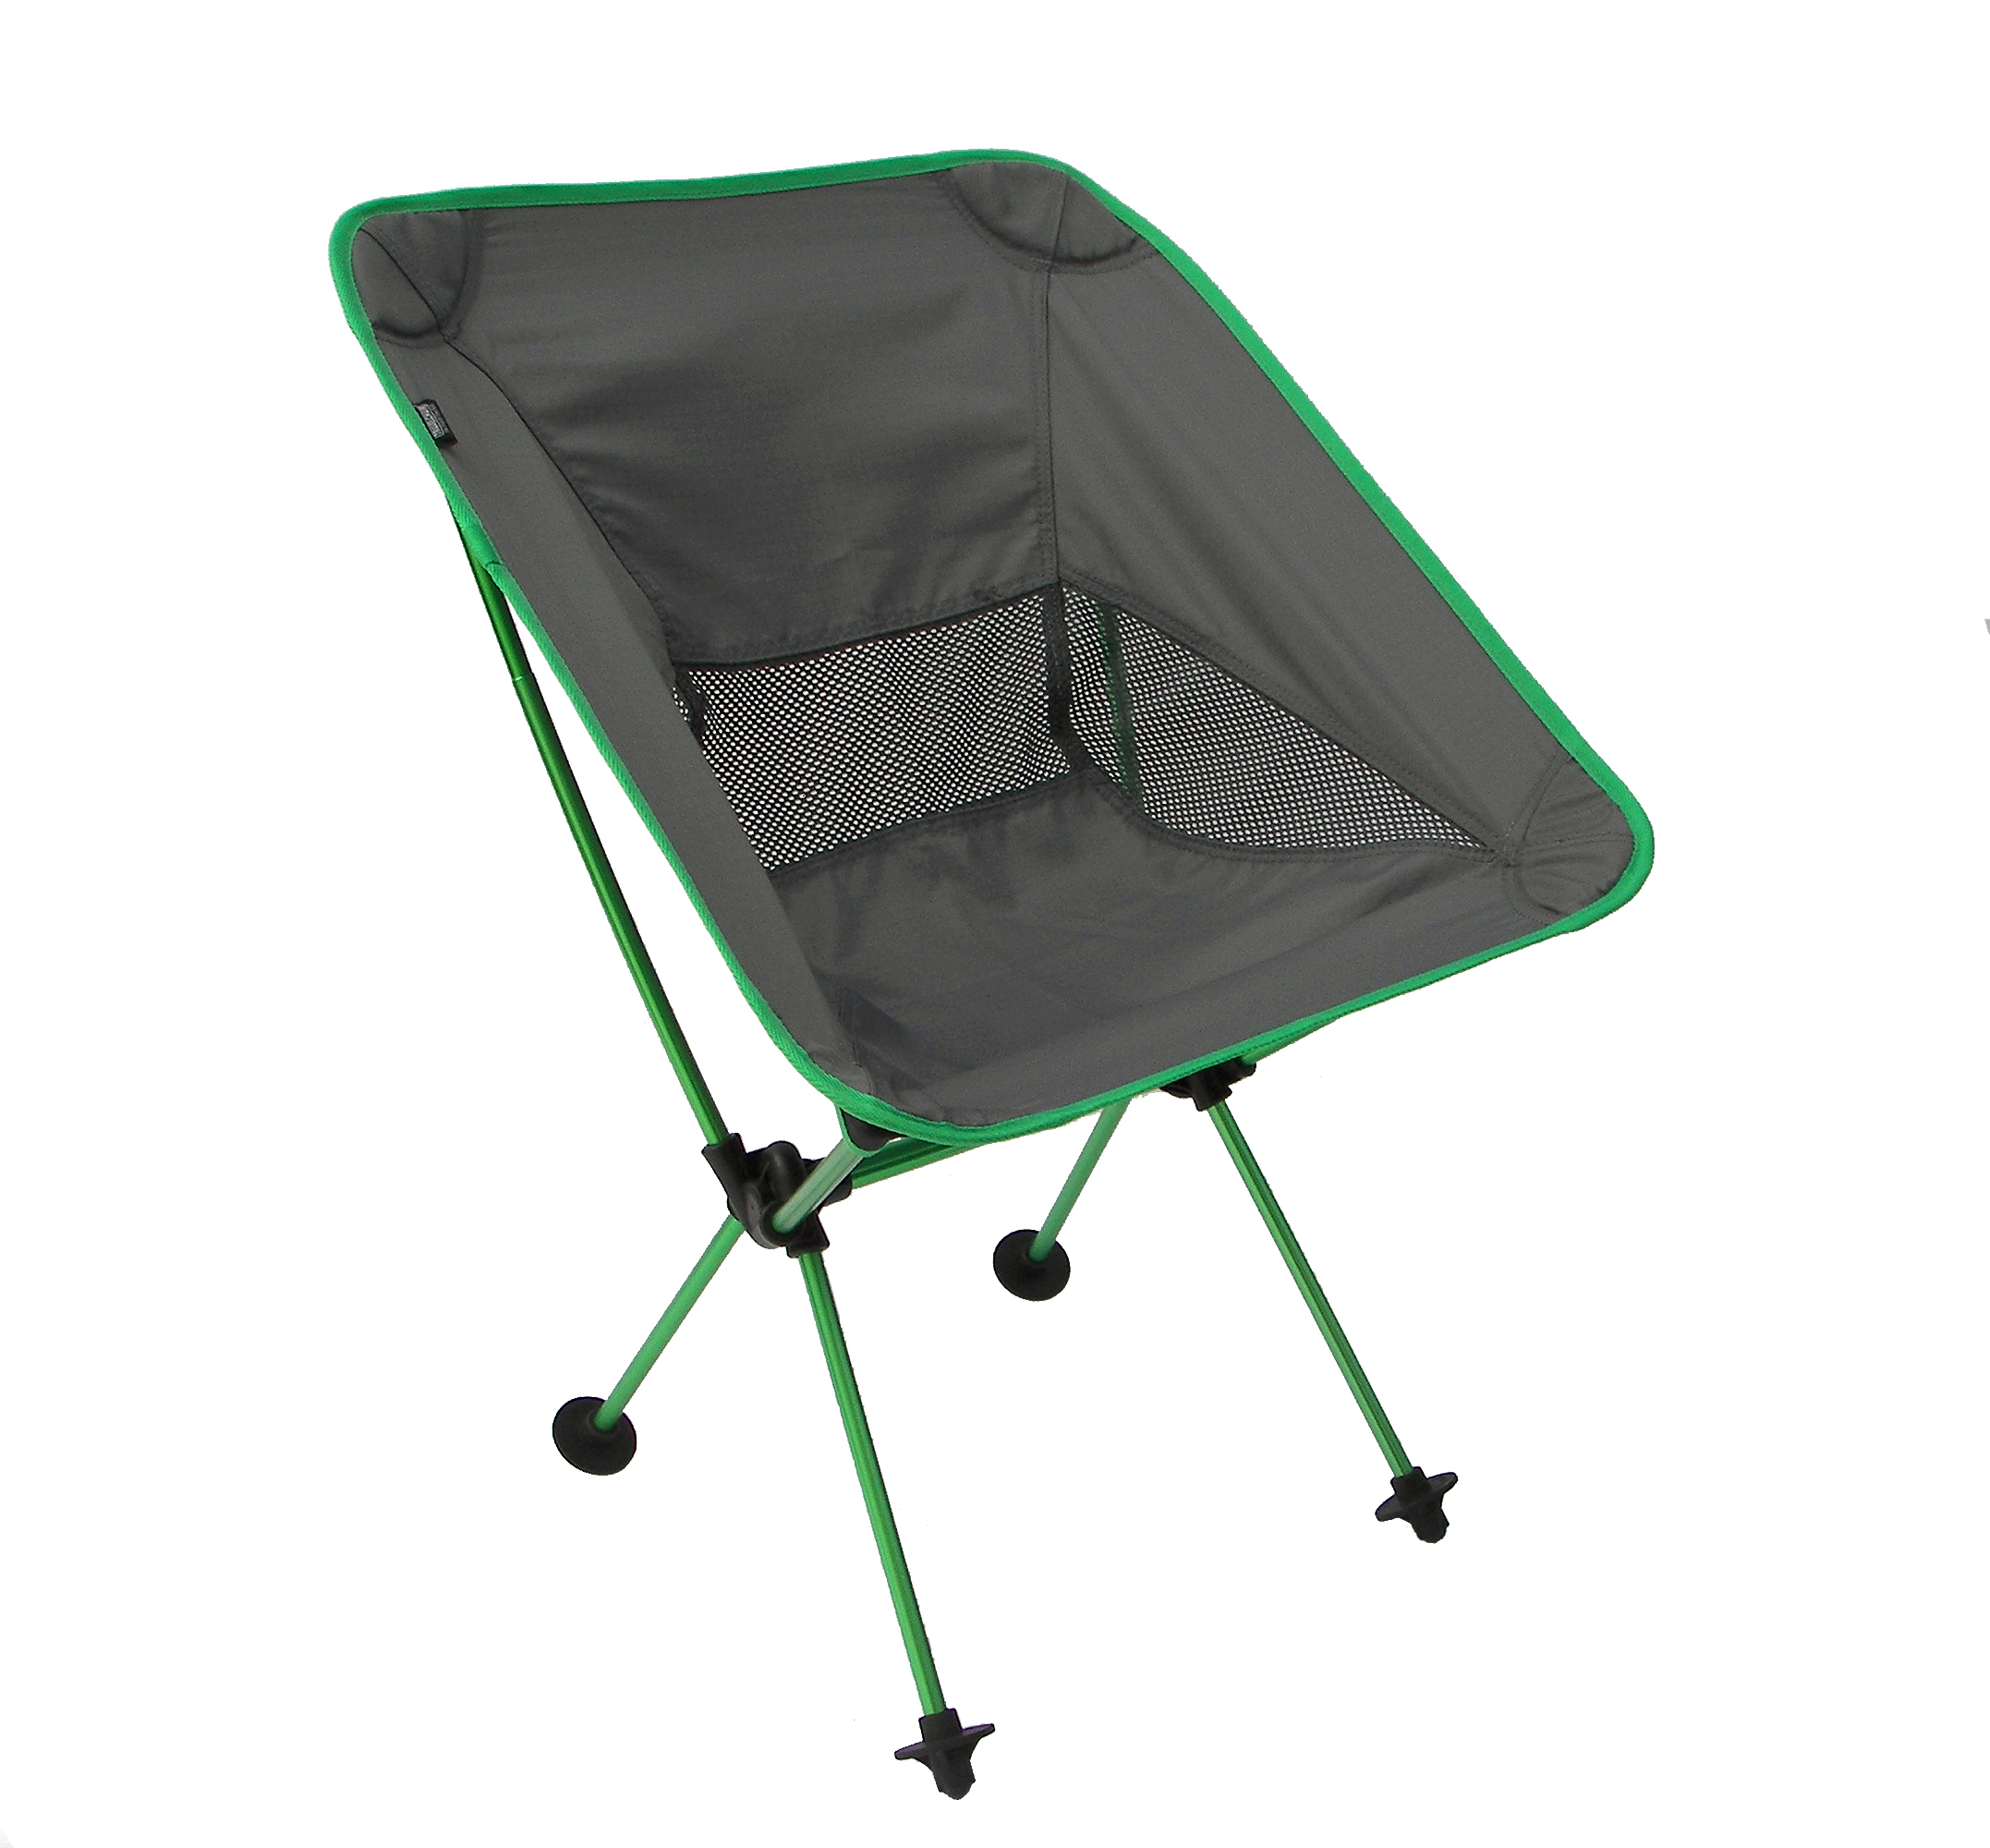 Travel Chair Travel Chair Joey Camping Chair Green